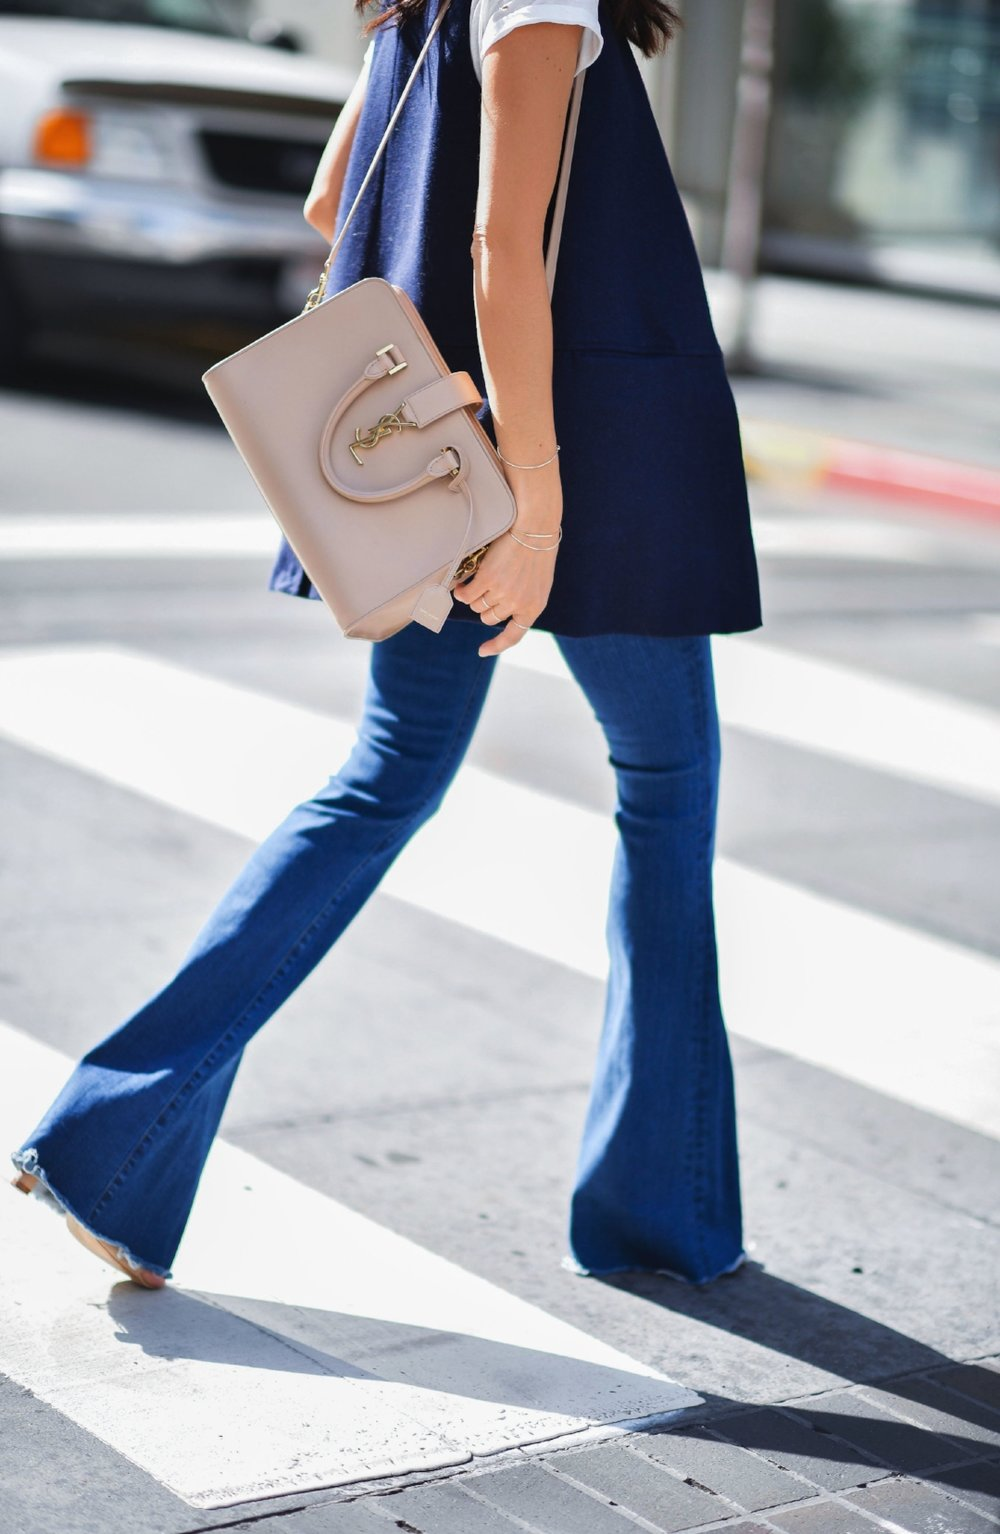 Mcguire-Flare-Jeans-and Saint-Laurent-Shoulder-Bag.jpg